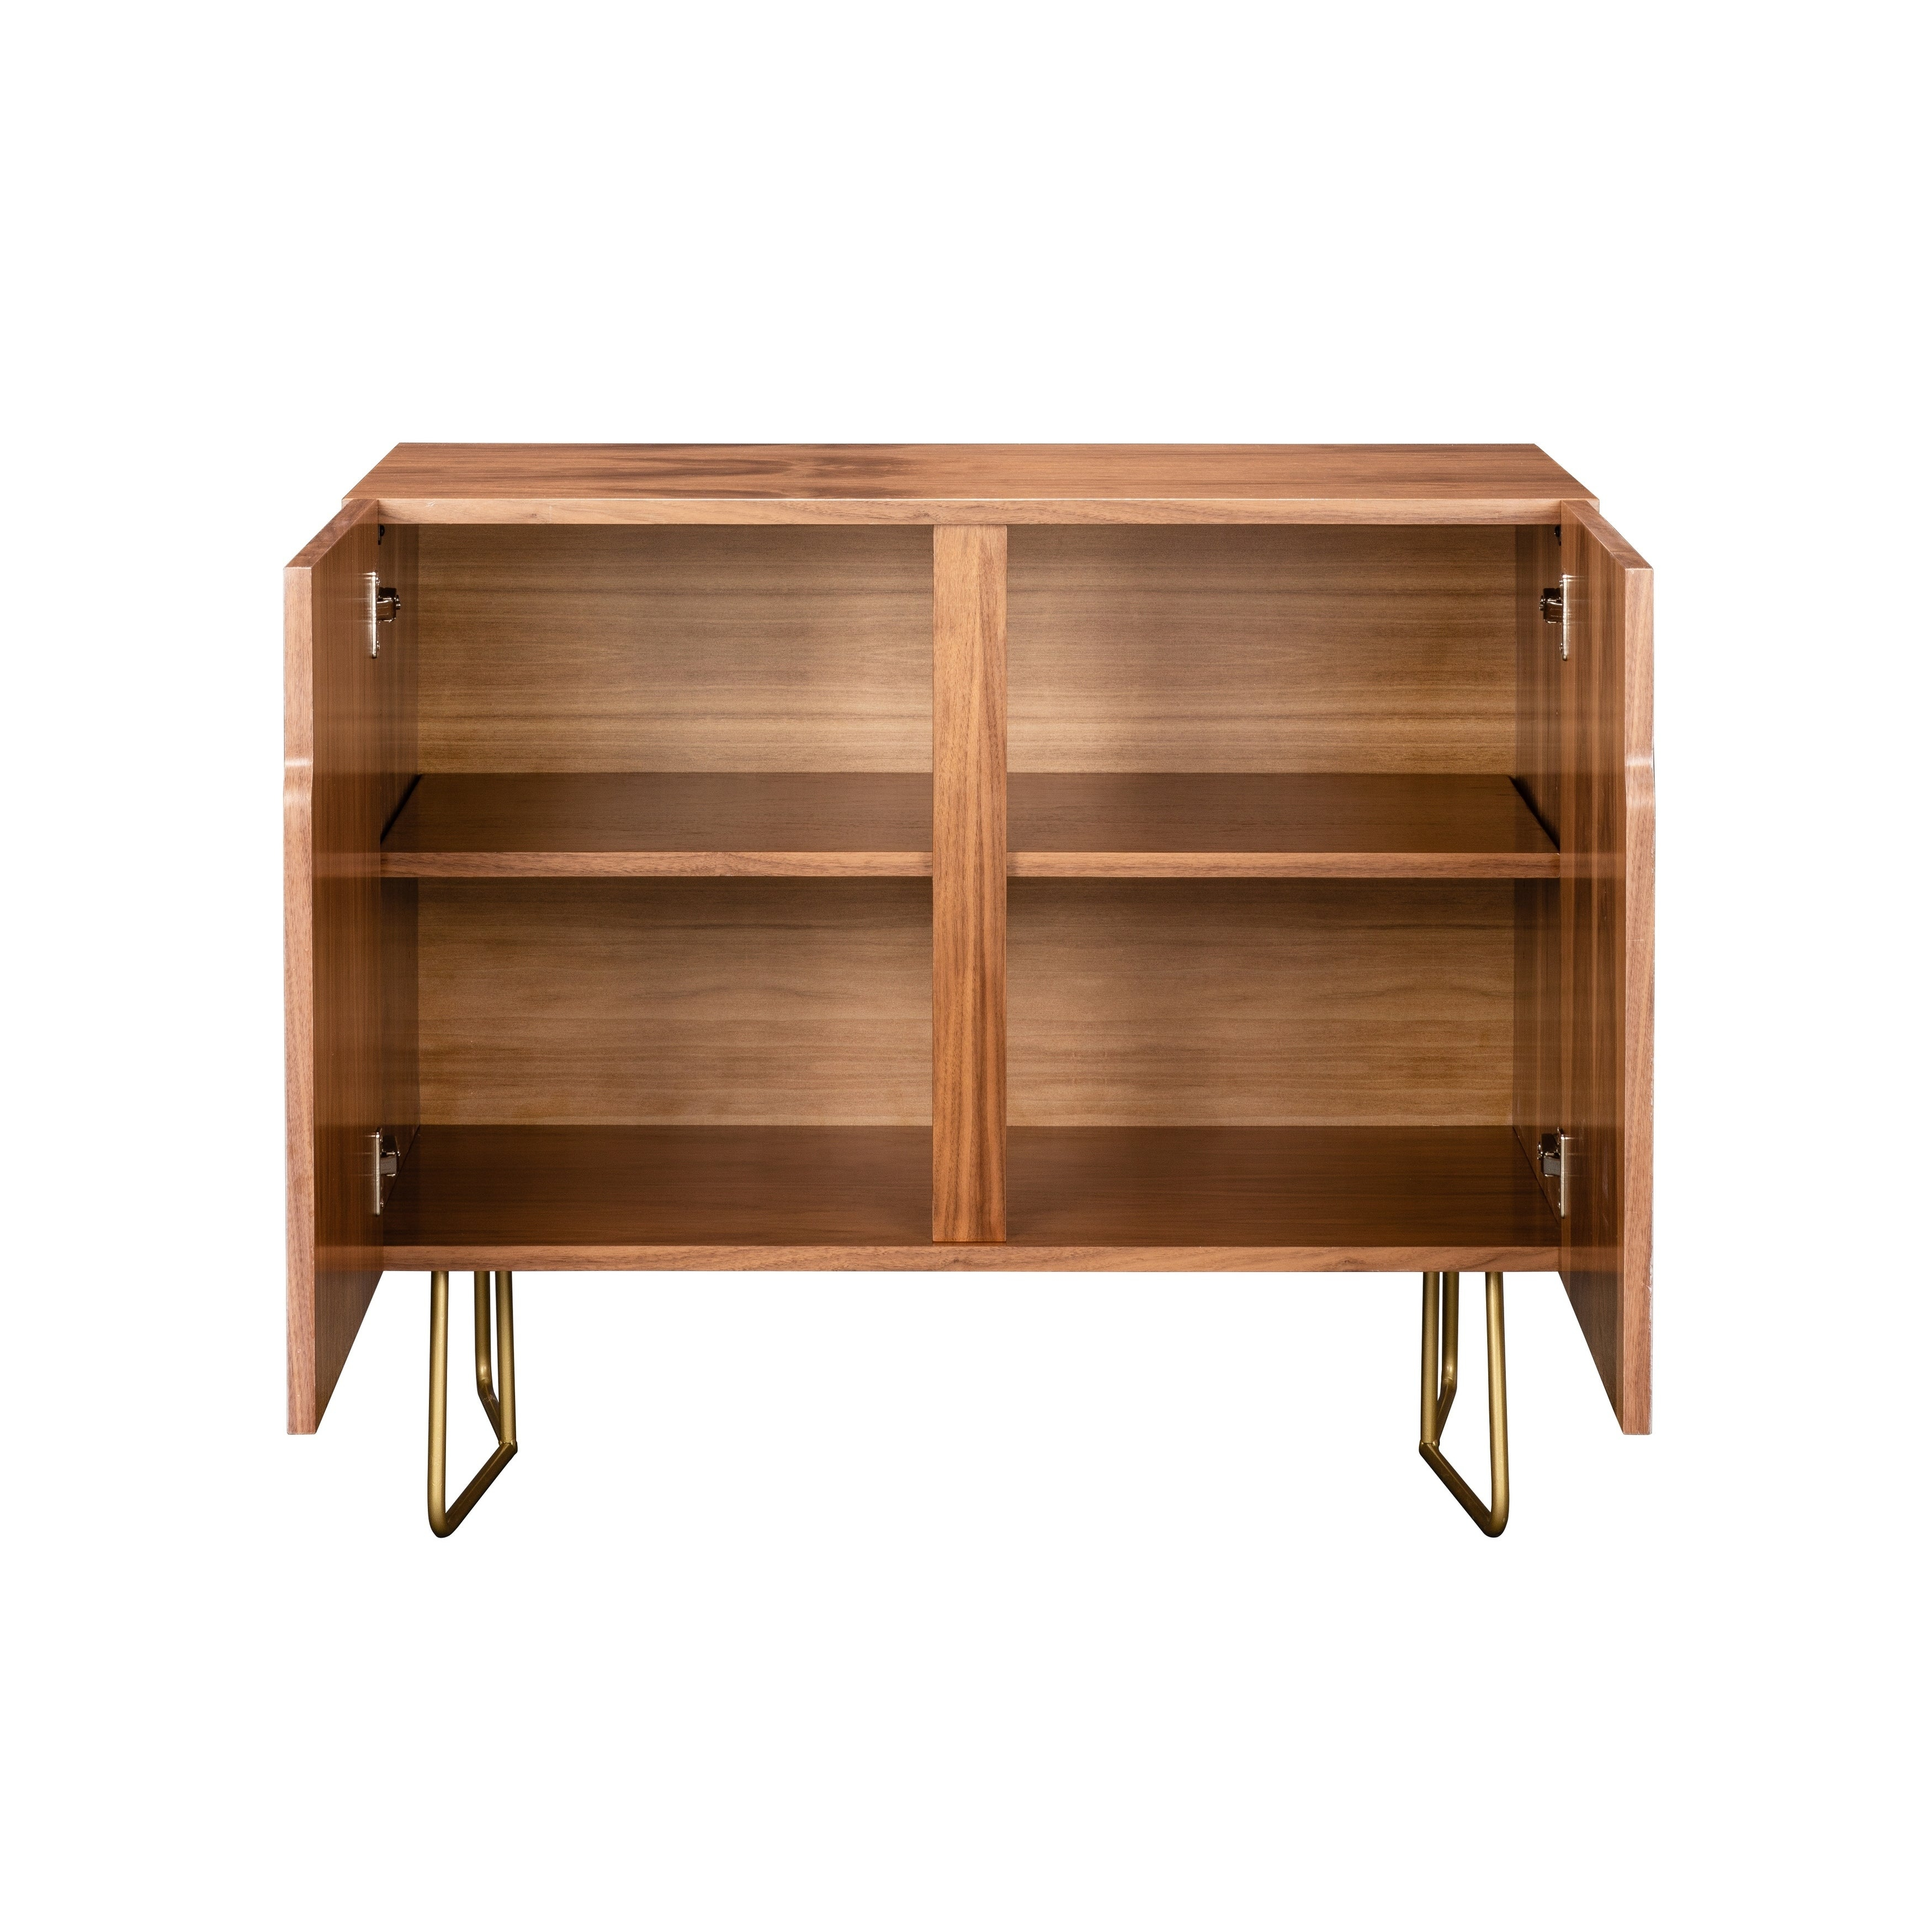 Deny Designs Turquoise Skies Credenza (Birch Or Walnut, 2 Leg Options) For Turquoise Skies Credenzas (Photo 4 of 30)